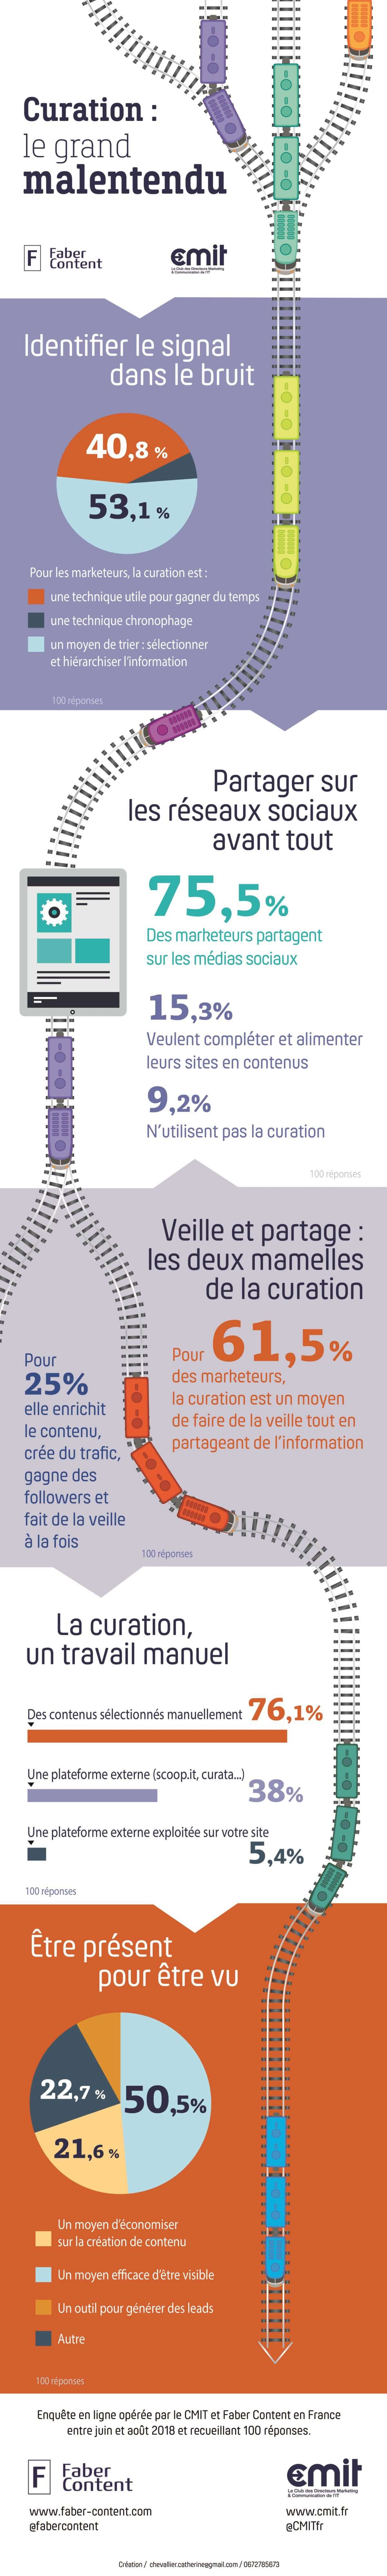 Infographie-Curation-Veille-Content-Marketing